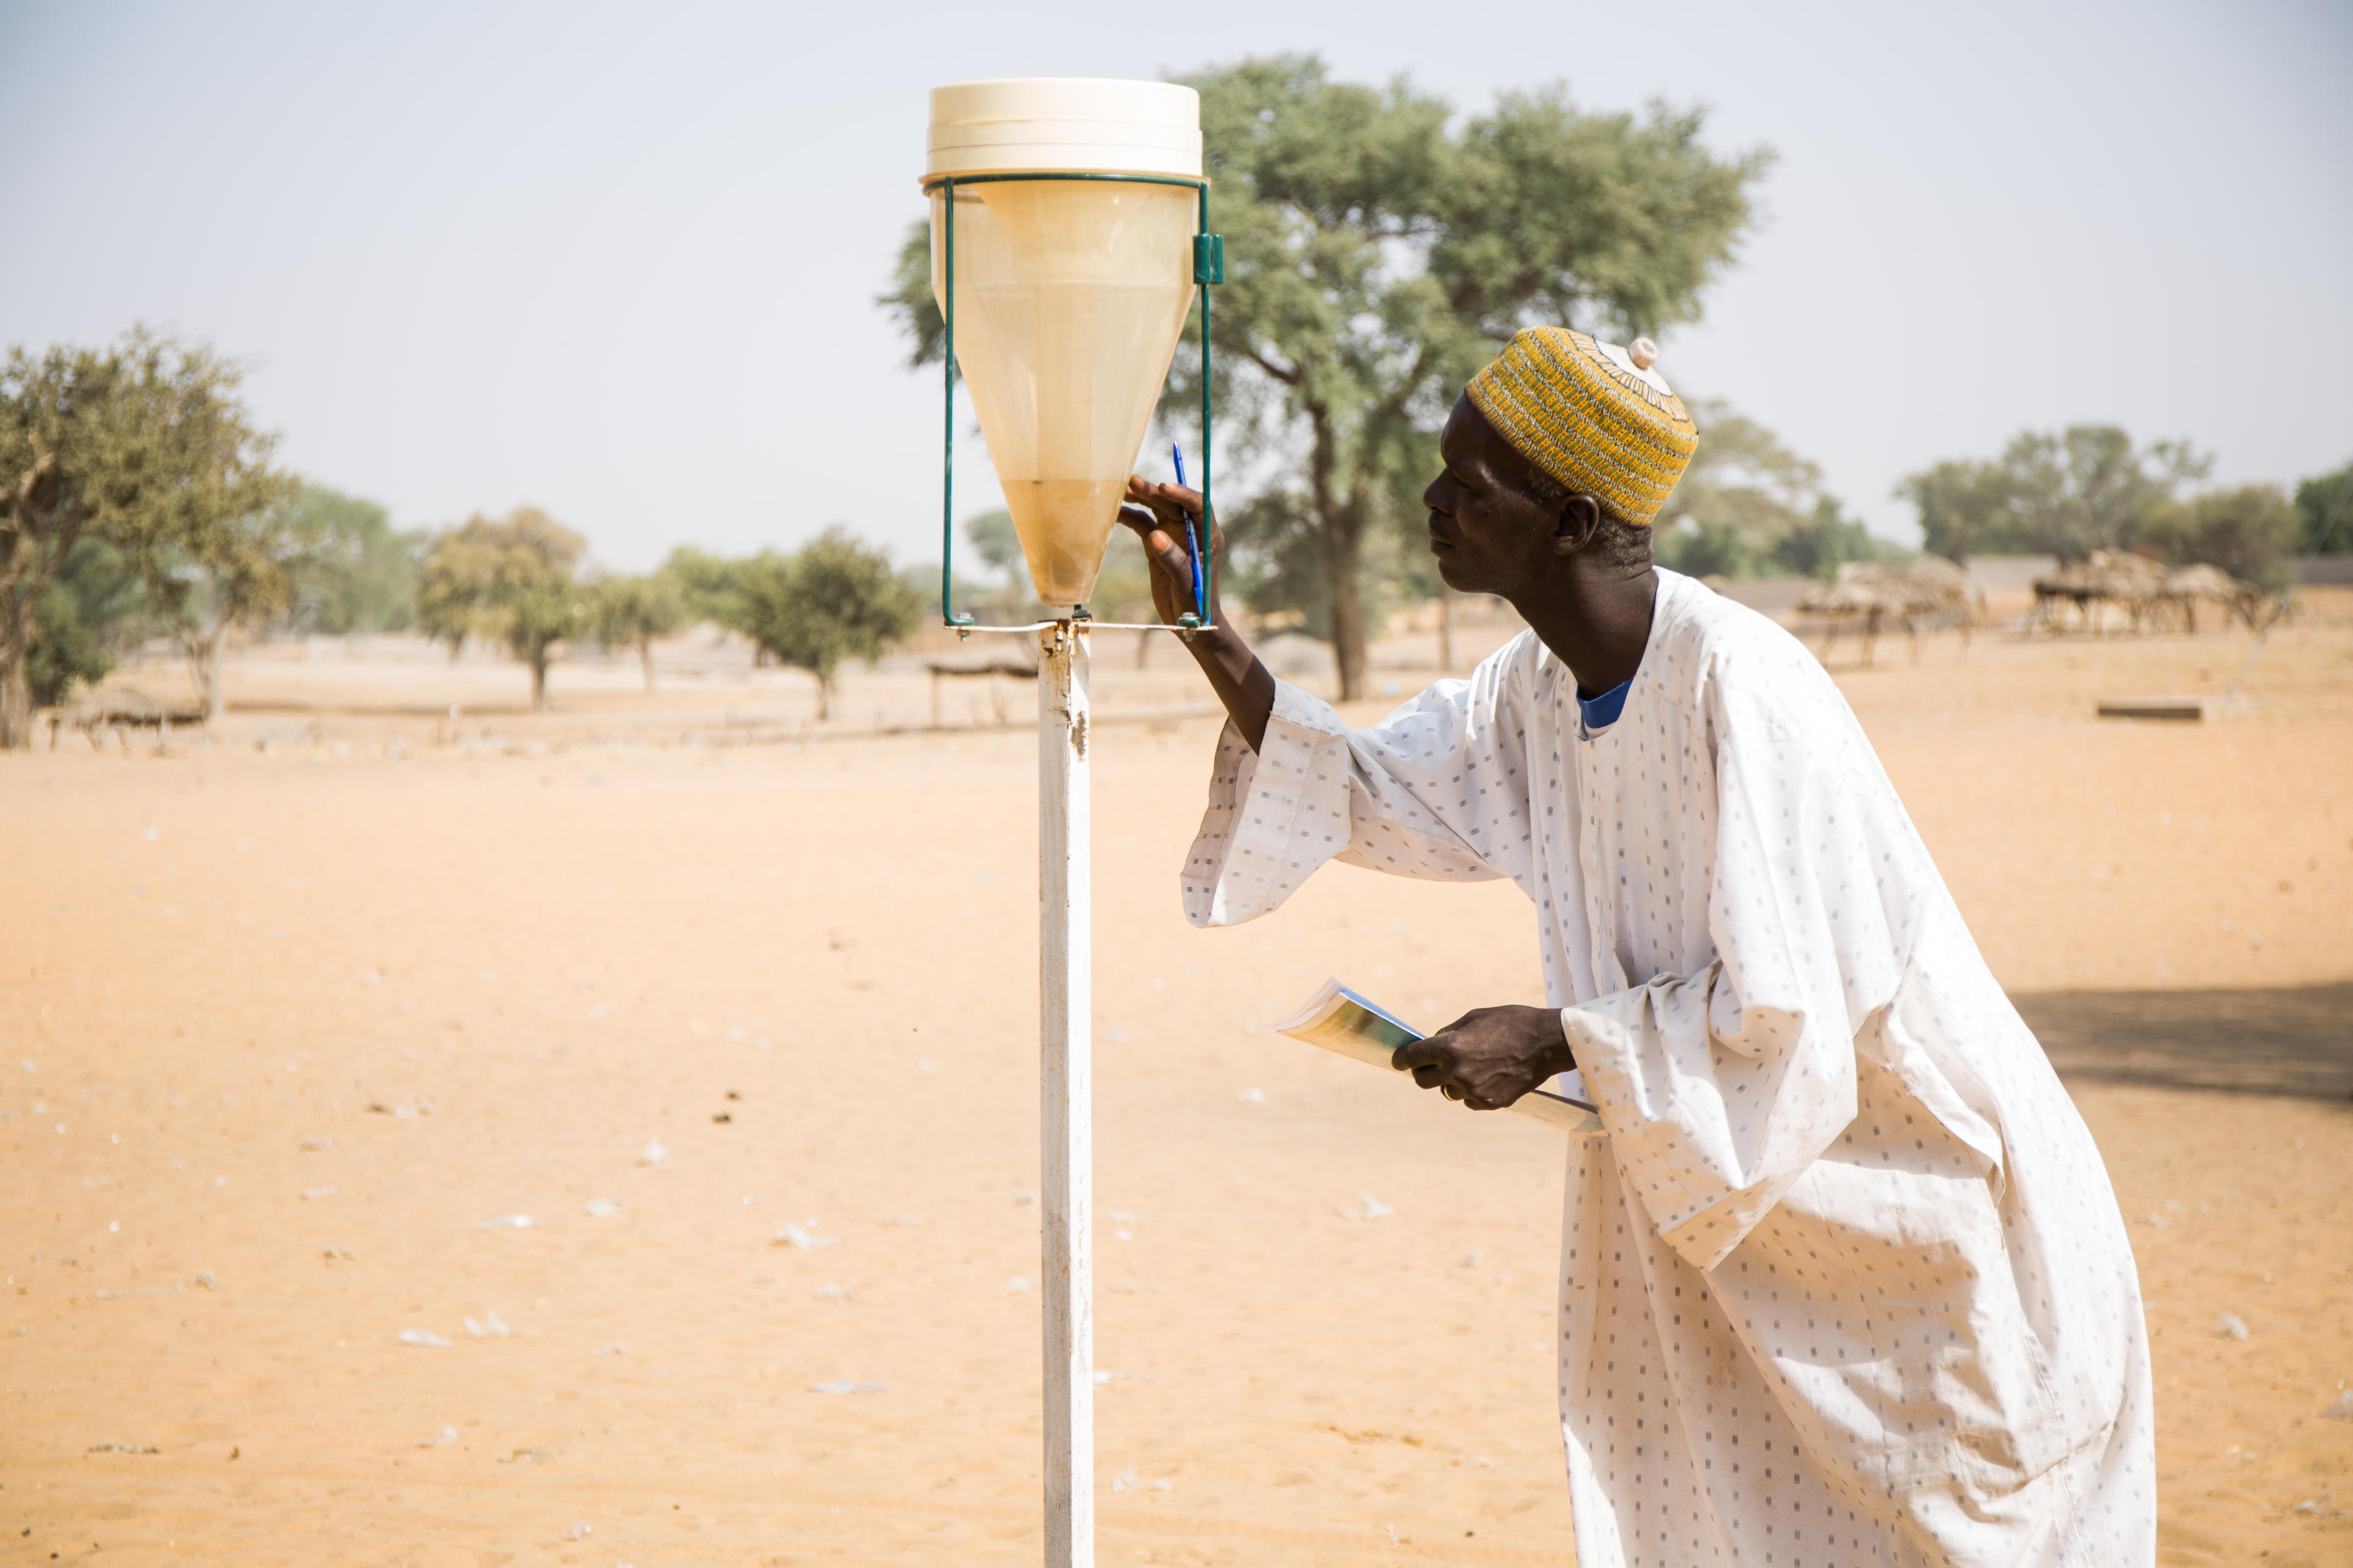 Ali Sabo, 51, a water monitor, demonstrating how he uses a rain gauge to monitor rainfall, Dungass, in the department of Dungass, Zinder, Niger, February 2019.